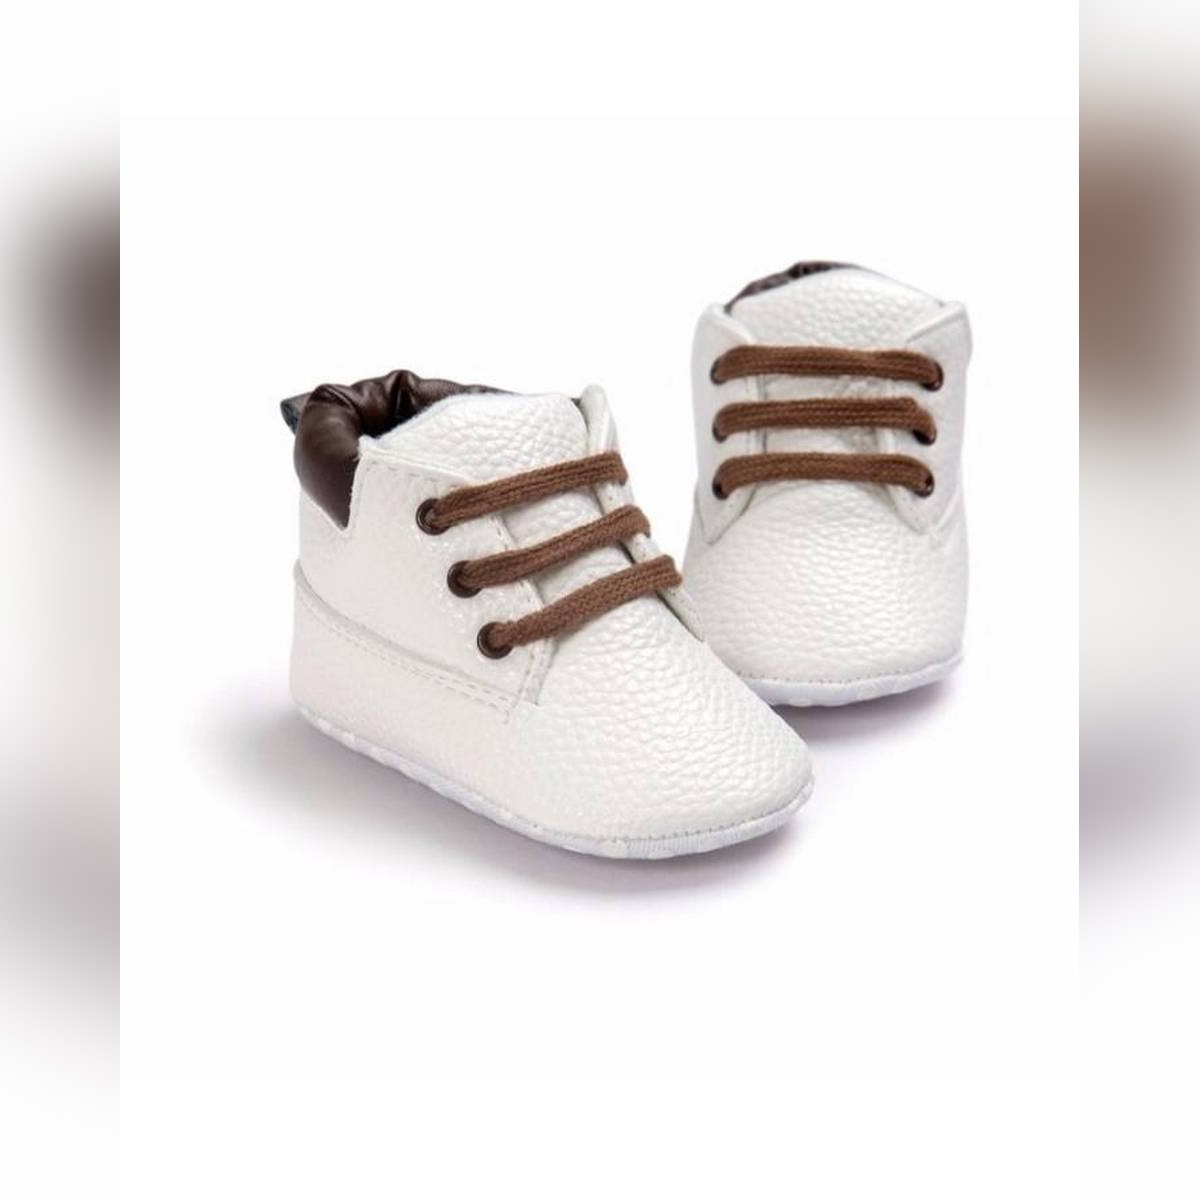 Toddlers Shoes Lace-Up Soft Bottom Cotton First Walker Sneakers 6 To 12 Months